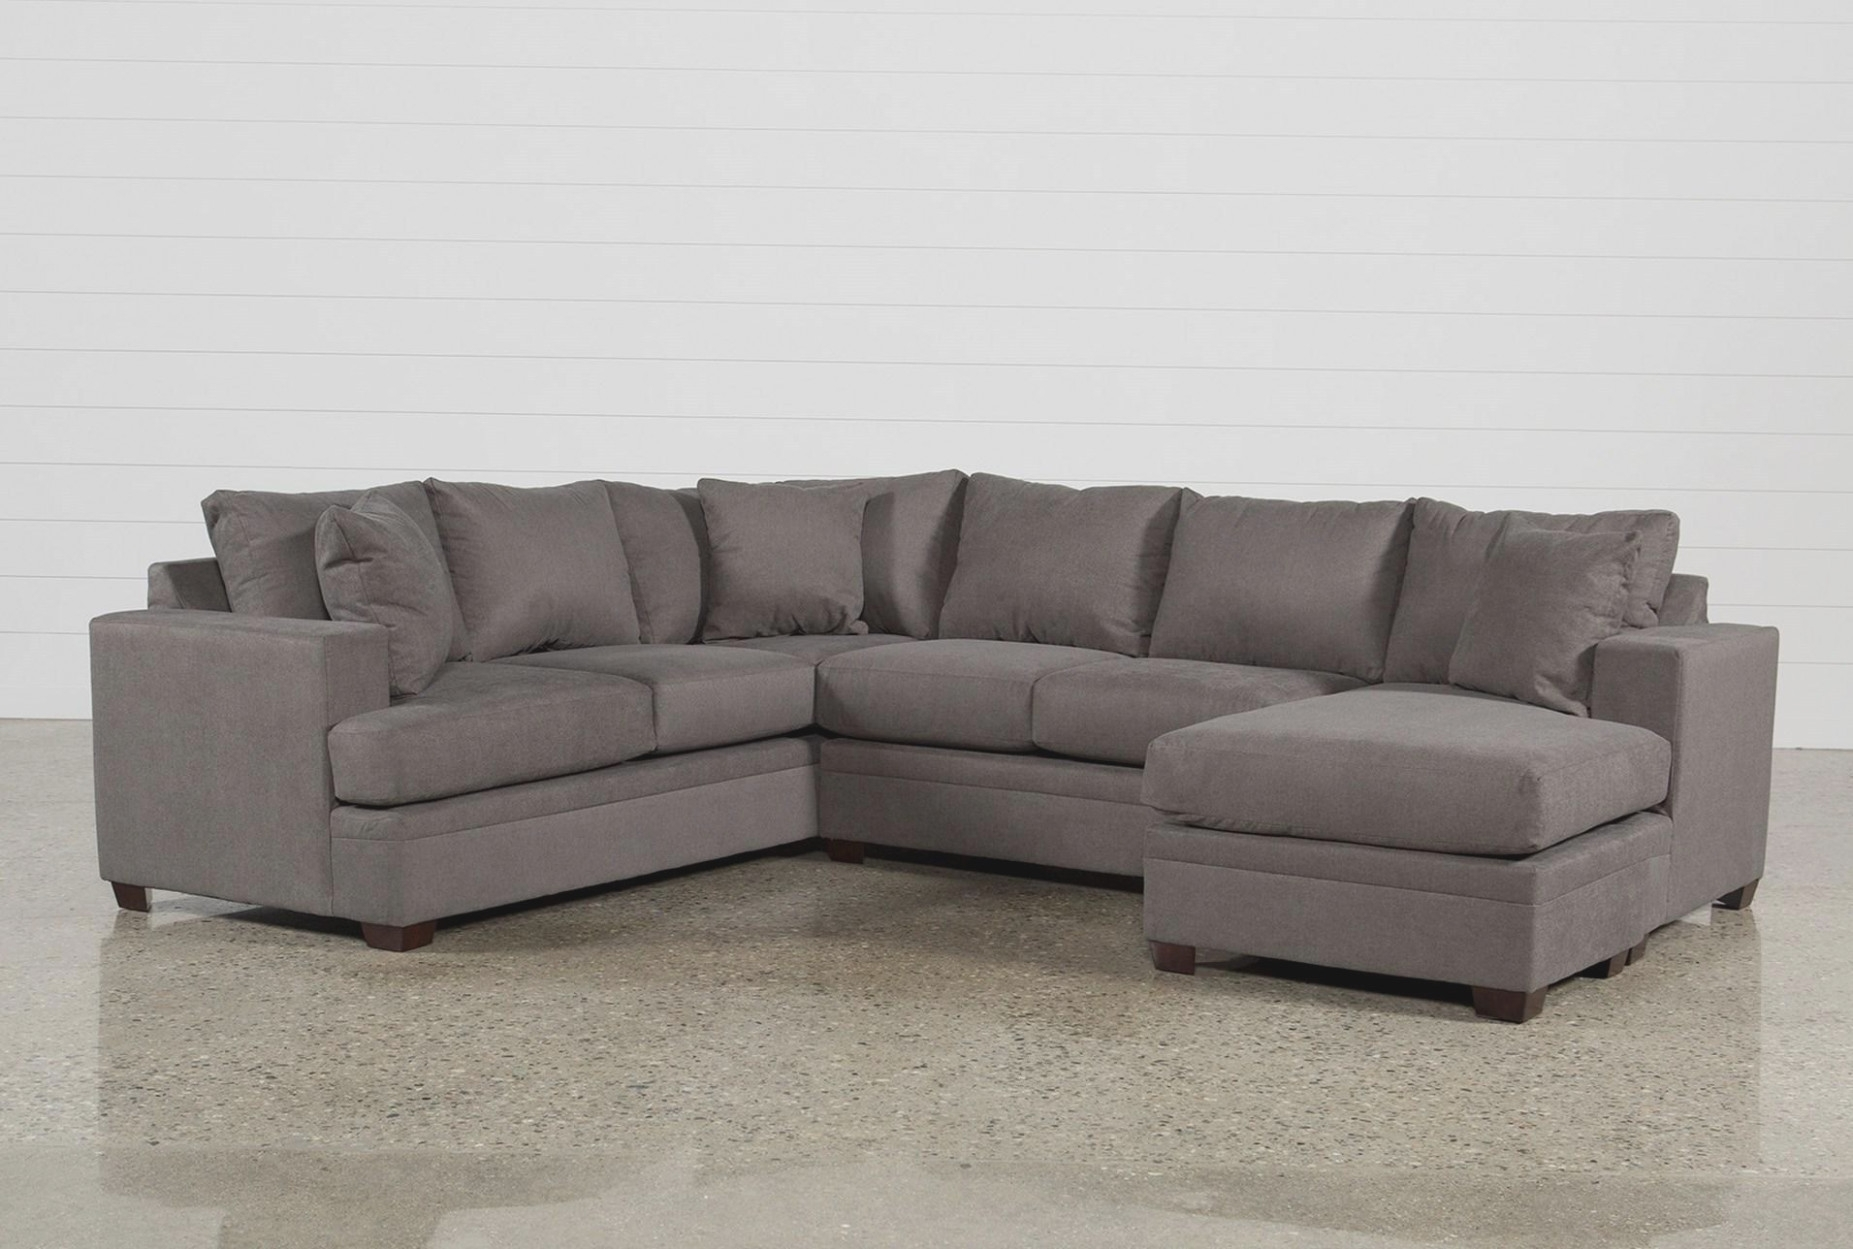 Kerri 39 Piece Sectional W/raf Chaise | Living Spaces - 2 Piece Sofa pertaining to Jobs Oat 2 Piece Sectionals With Left Facing Chaise (Image 16 of 30)